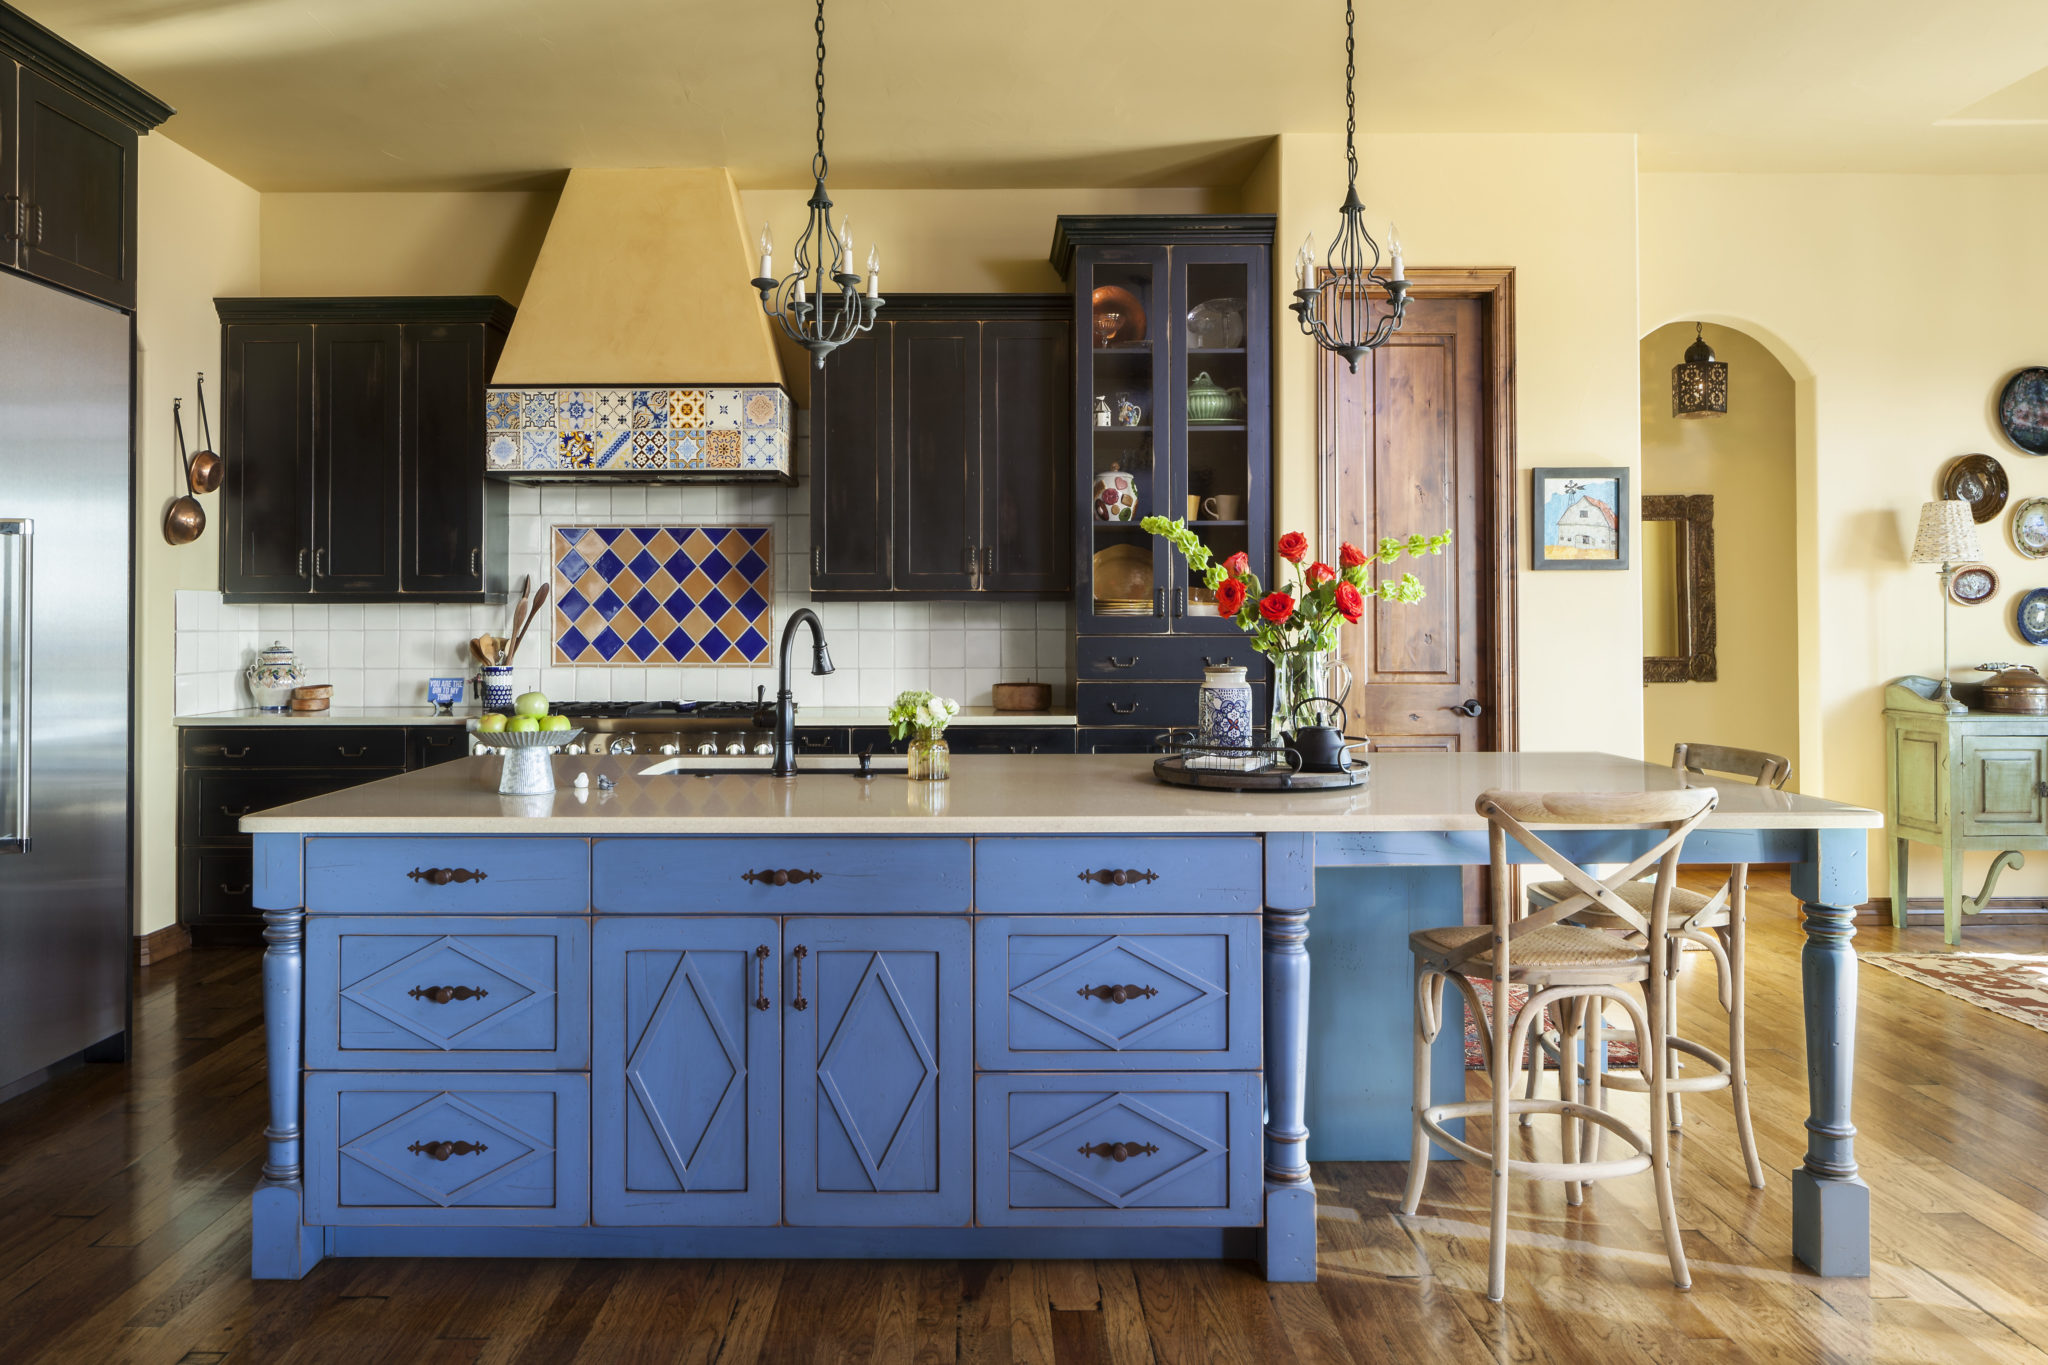 jennifer Medoff, Dragonfly Designs, Longmont, CO , kitchen with blue island